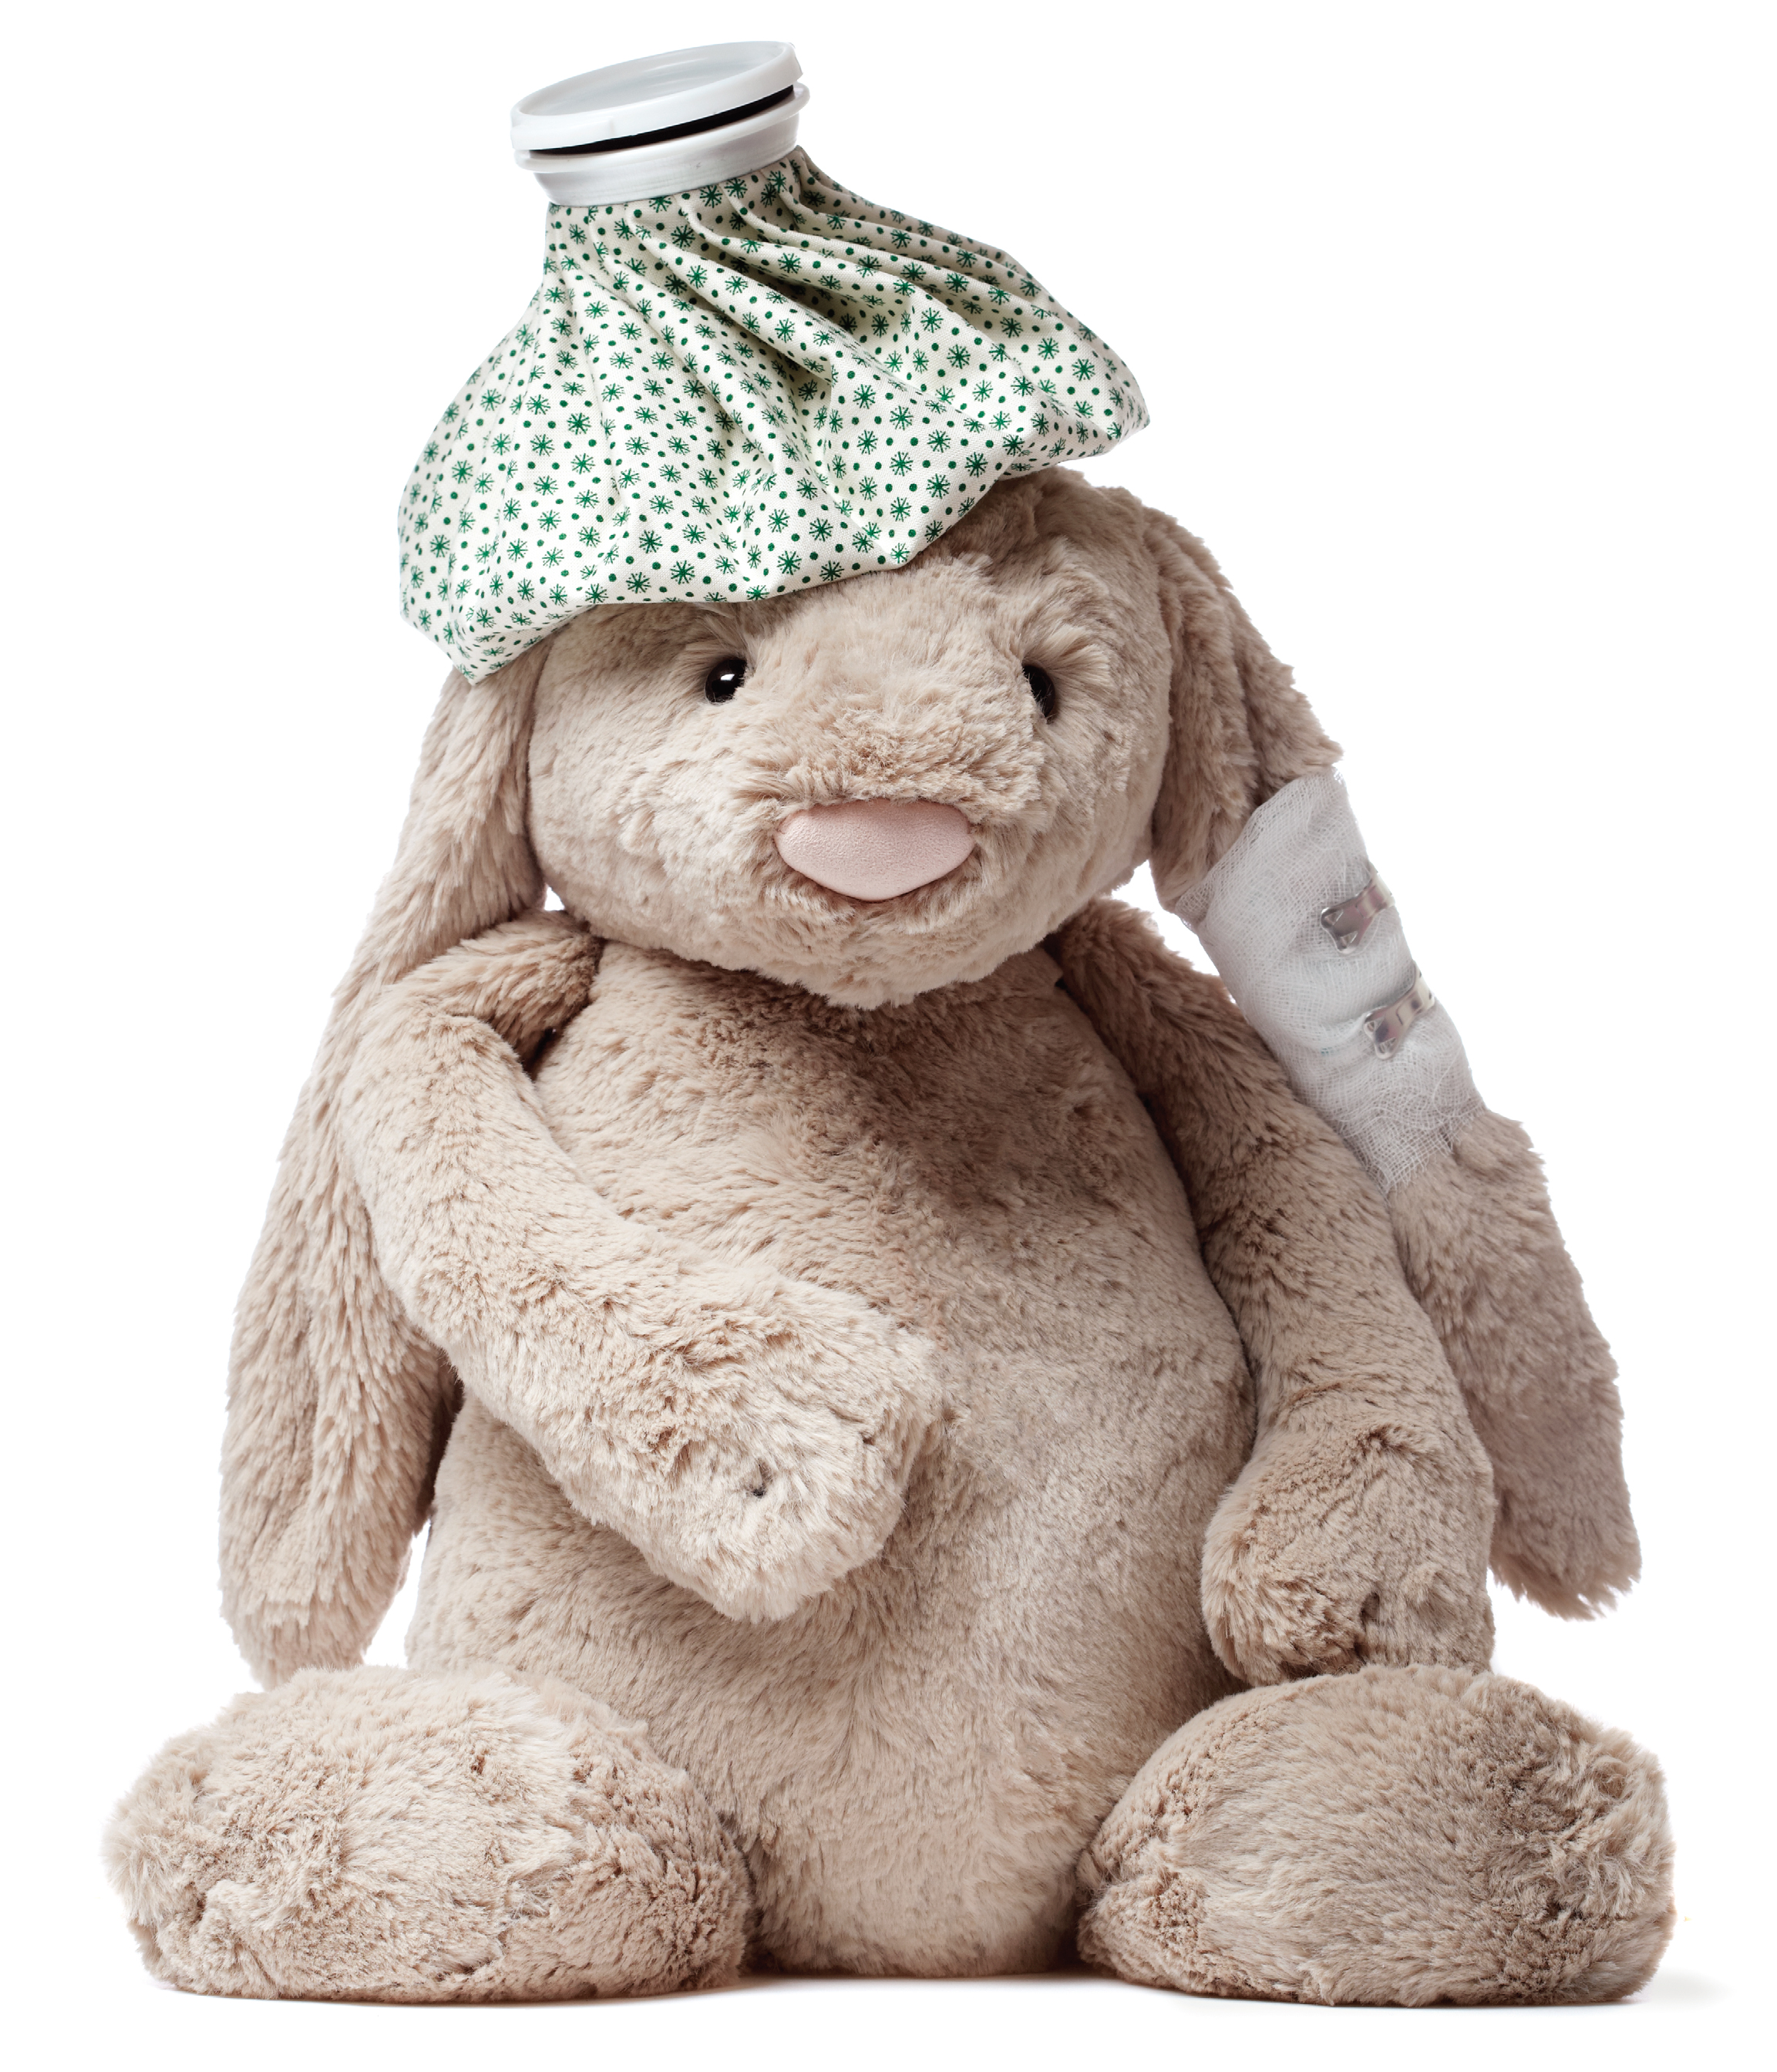 Stuffed bunny rabbit with ice pack and bandages, Feb 13, p100